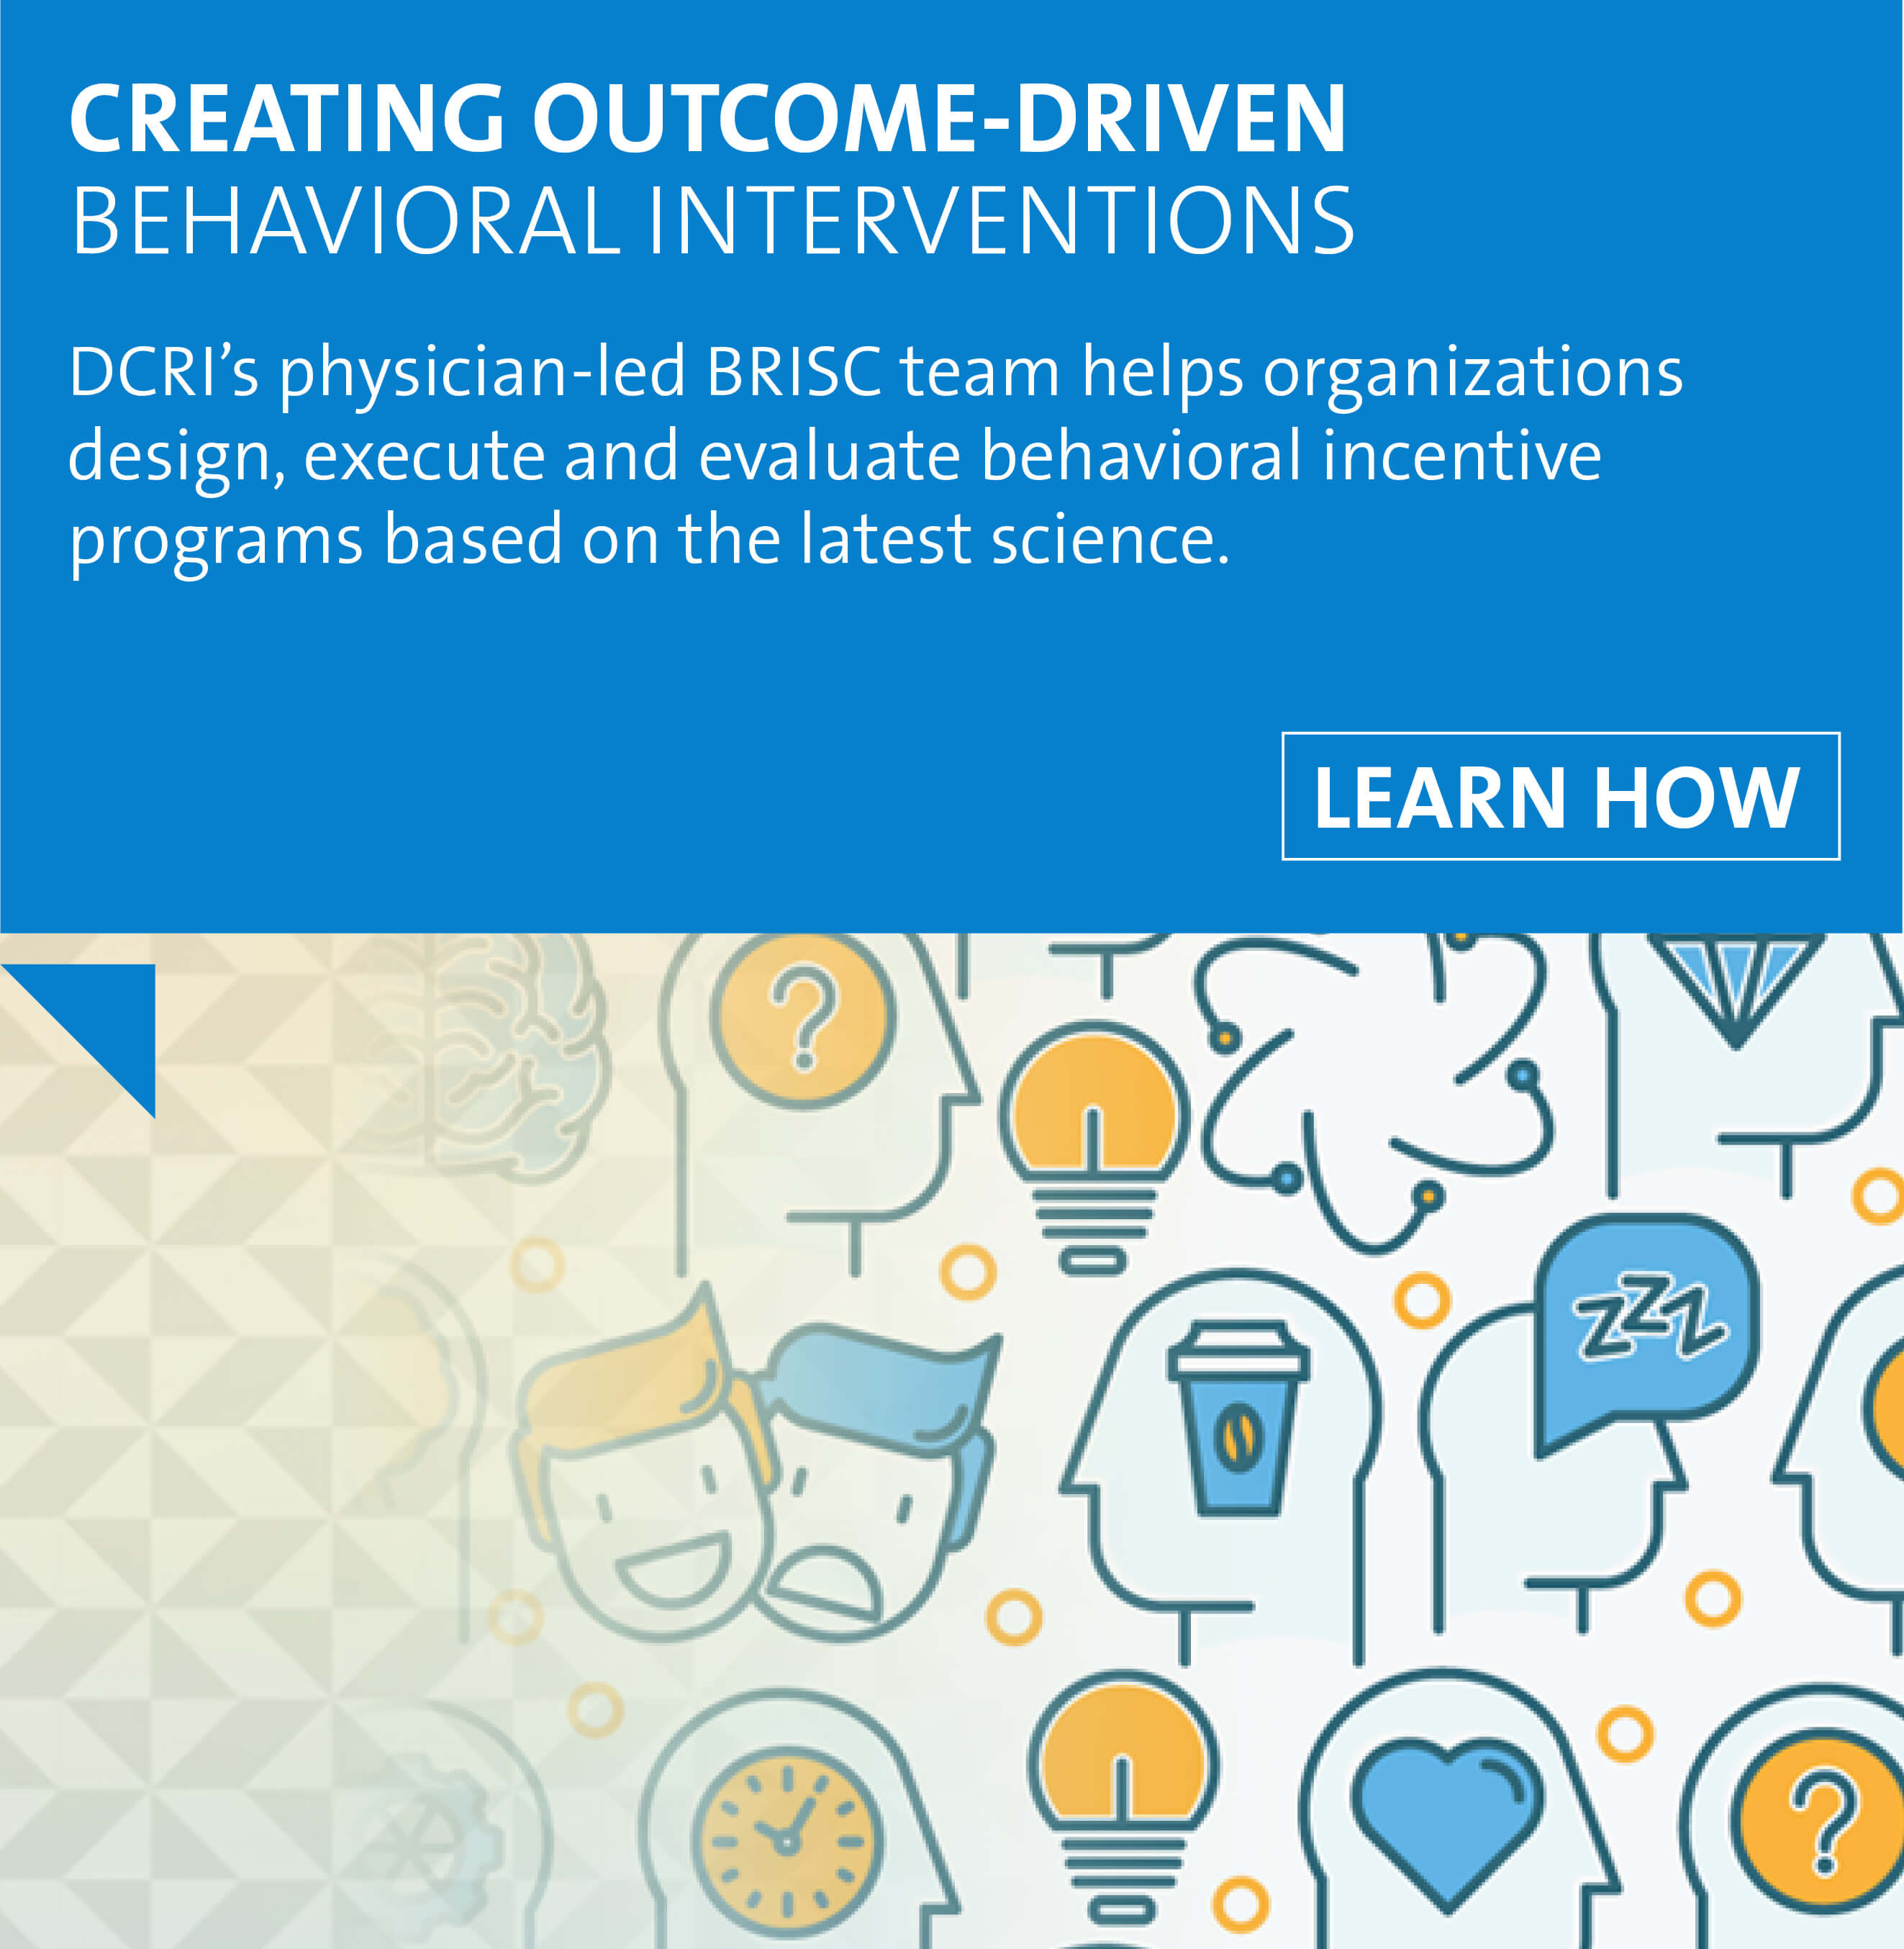 Learn how DCRI's physician-led BRISC team helps organizations design, execute and evaluate behavioral incentive programs based on the latest science.